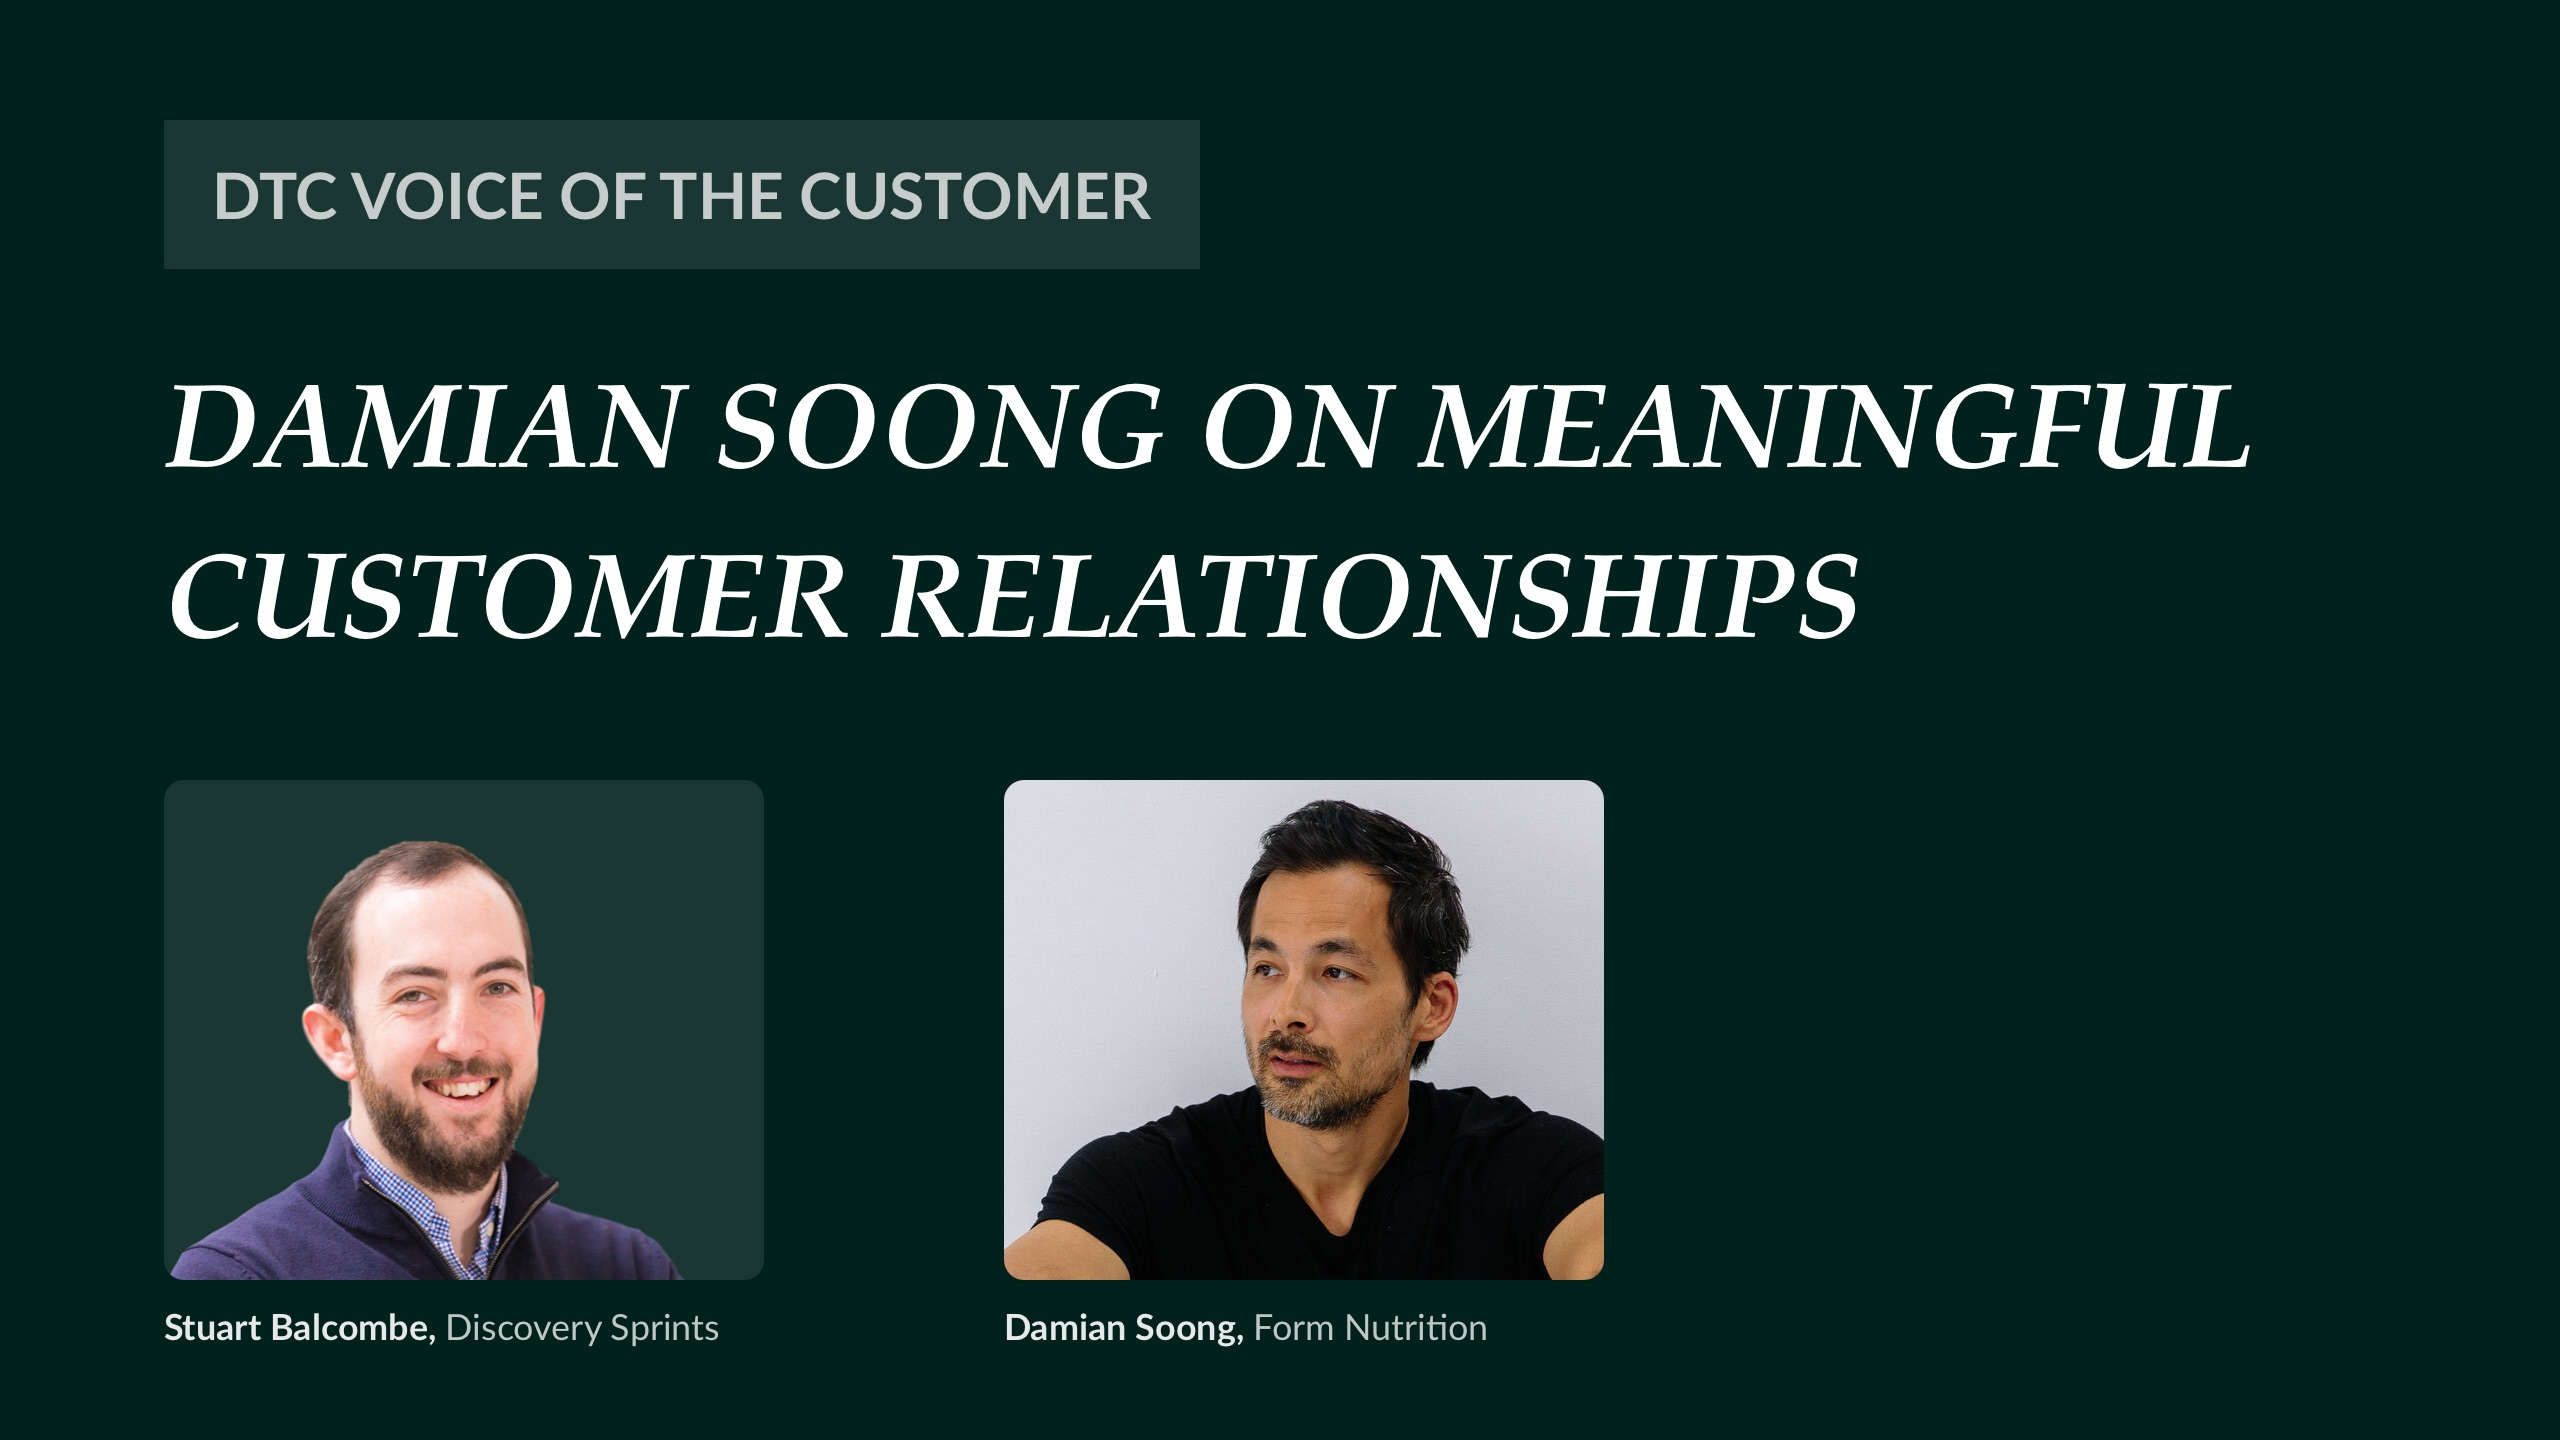 Damian Soong on meaningful customer relationships